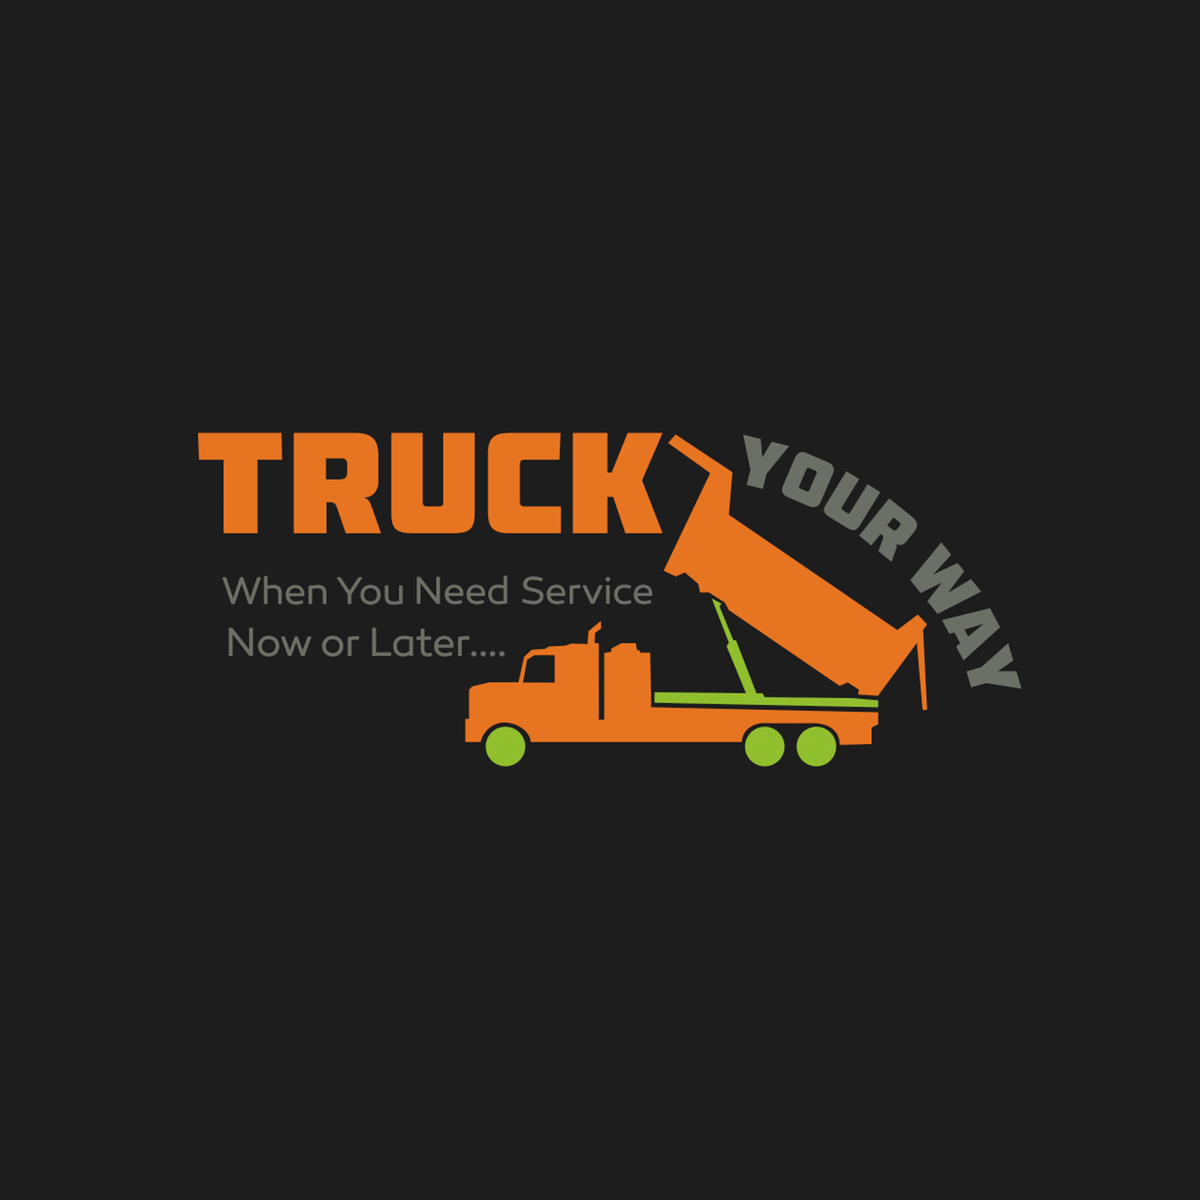 Truck Your Way